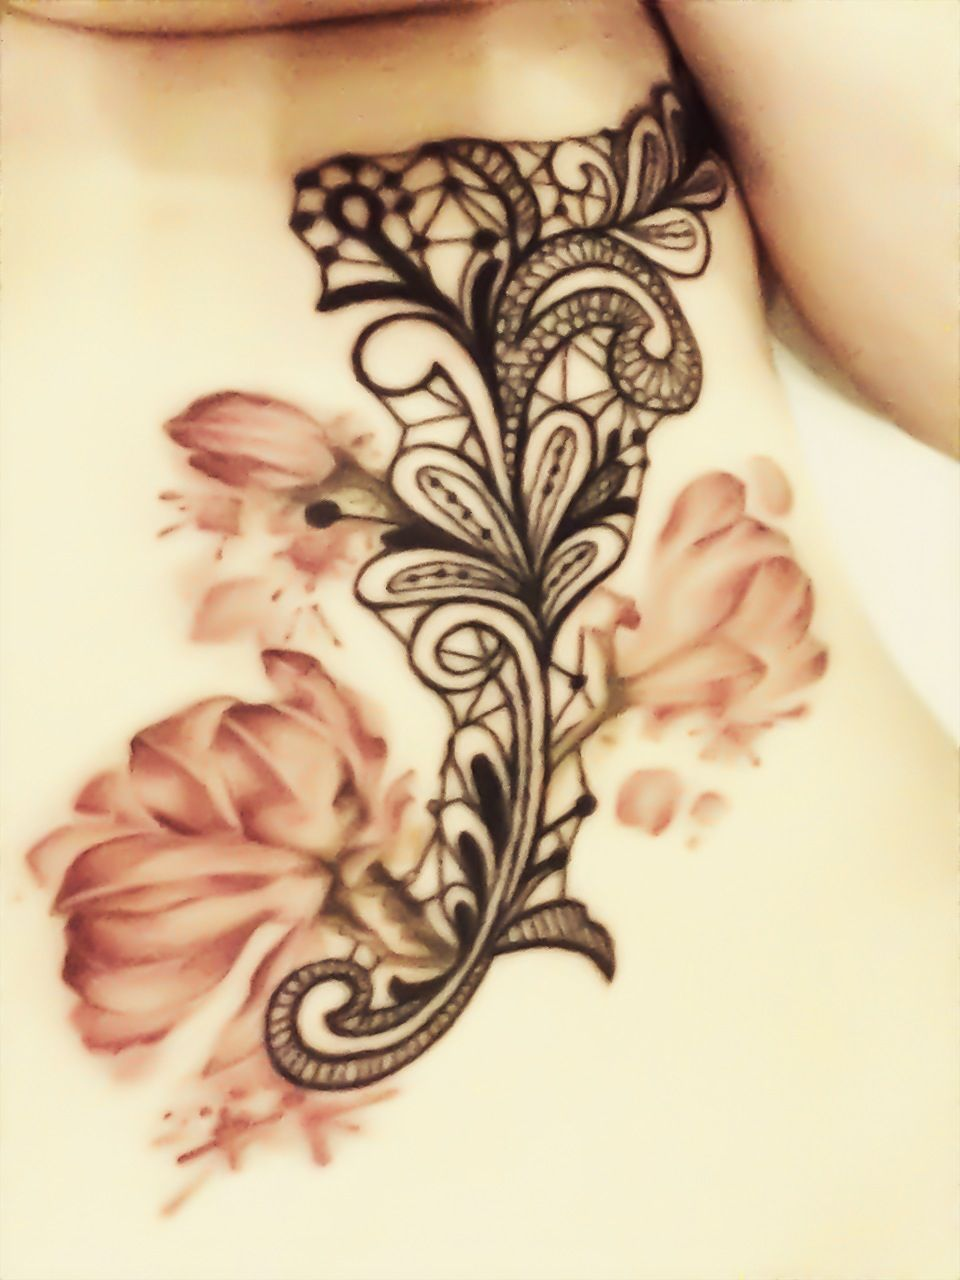 70621fbbb Tattoo over ribs, lace with flower work done by Aimee at Skinks in  Hamilton! Love the soft color of the flowers!